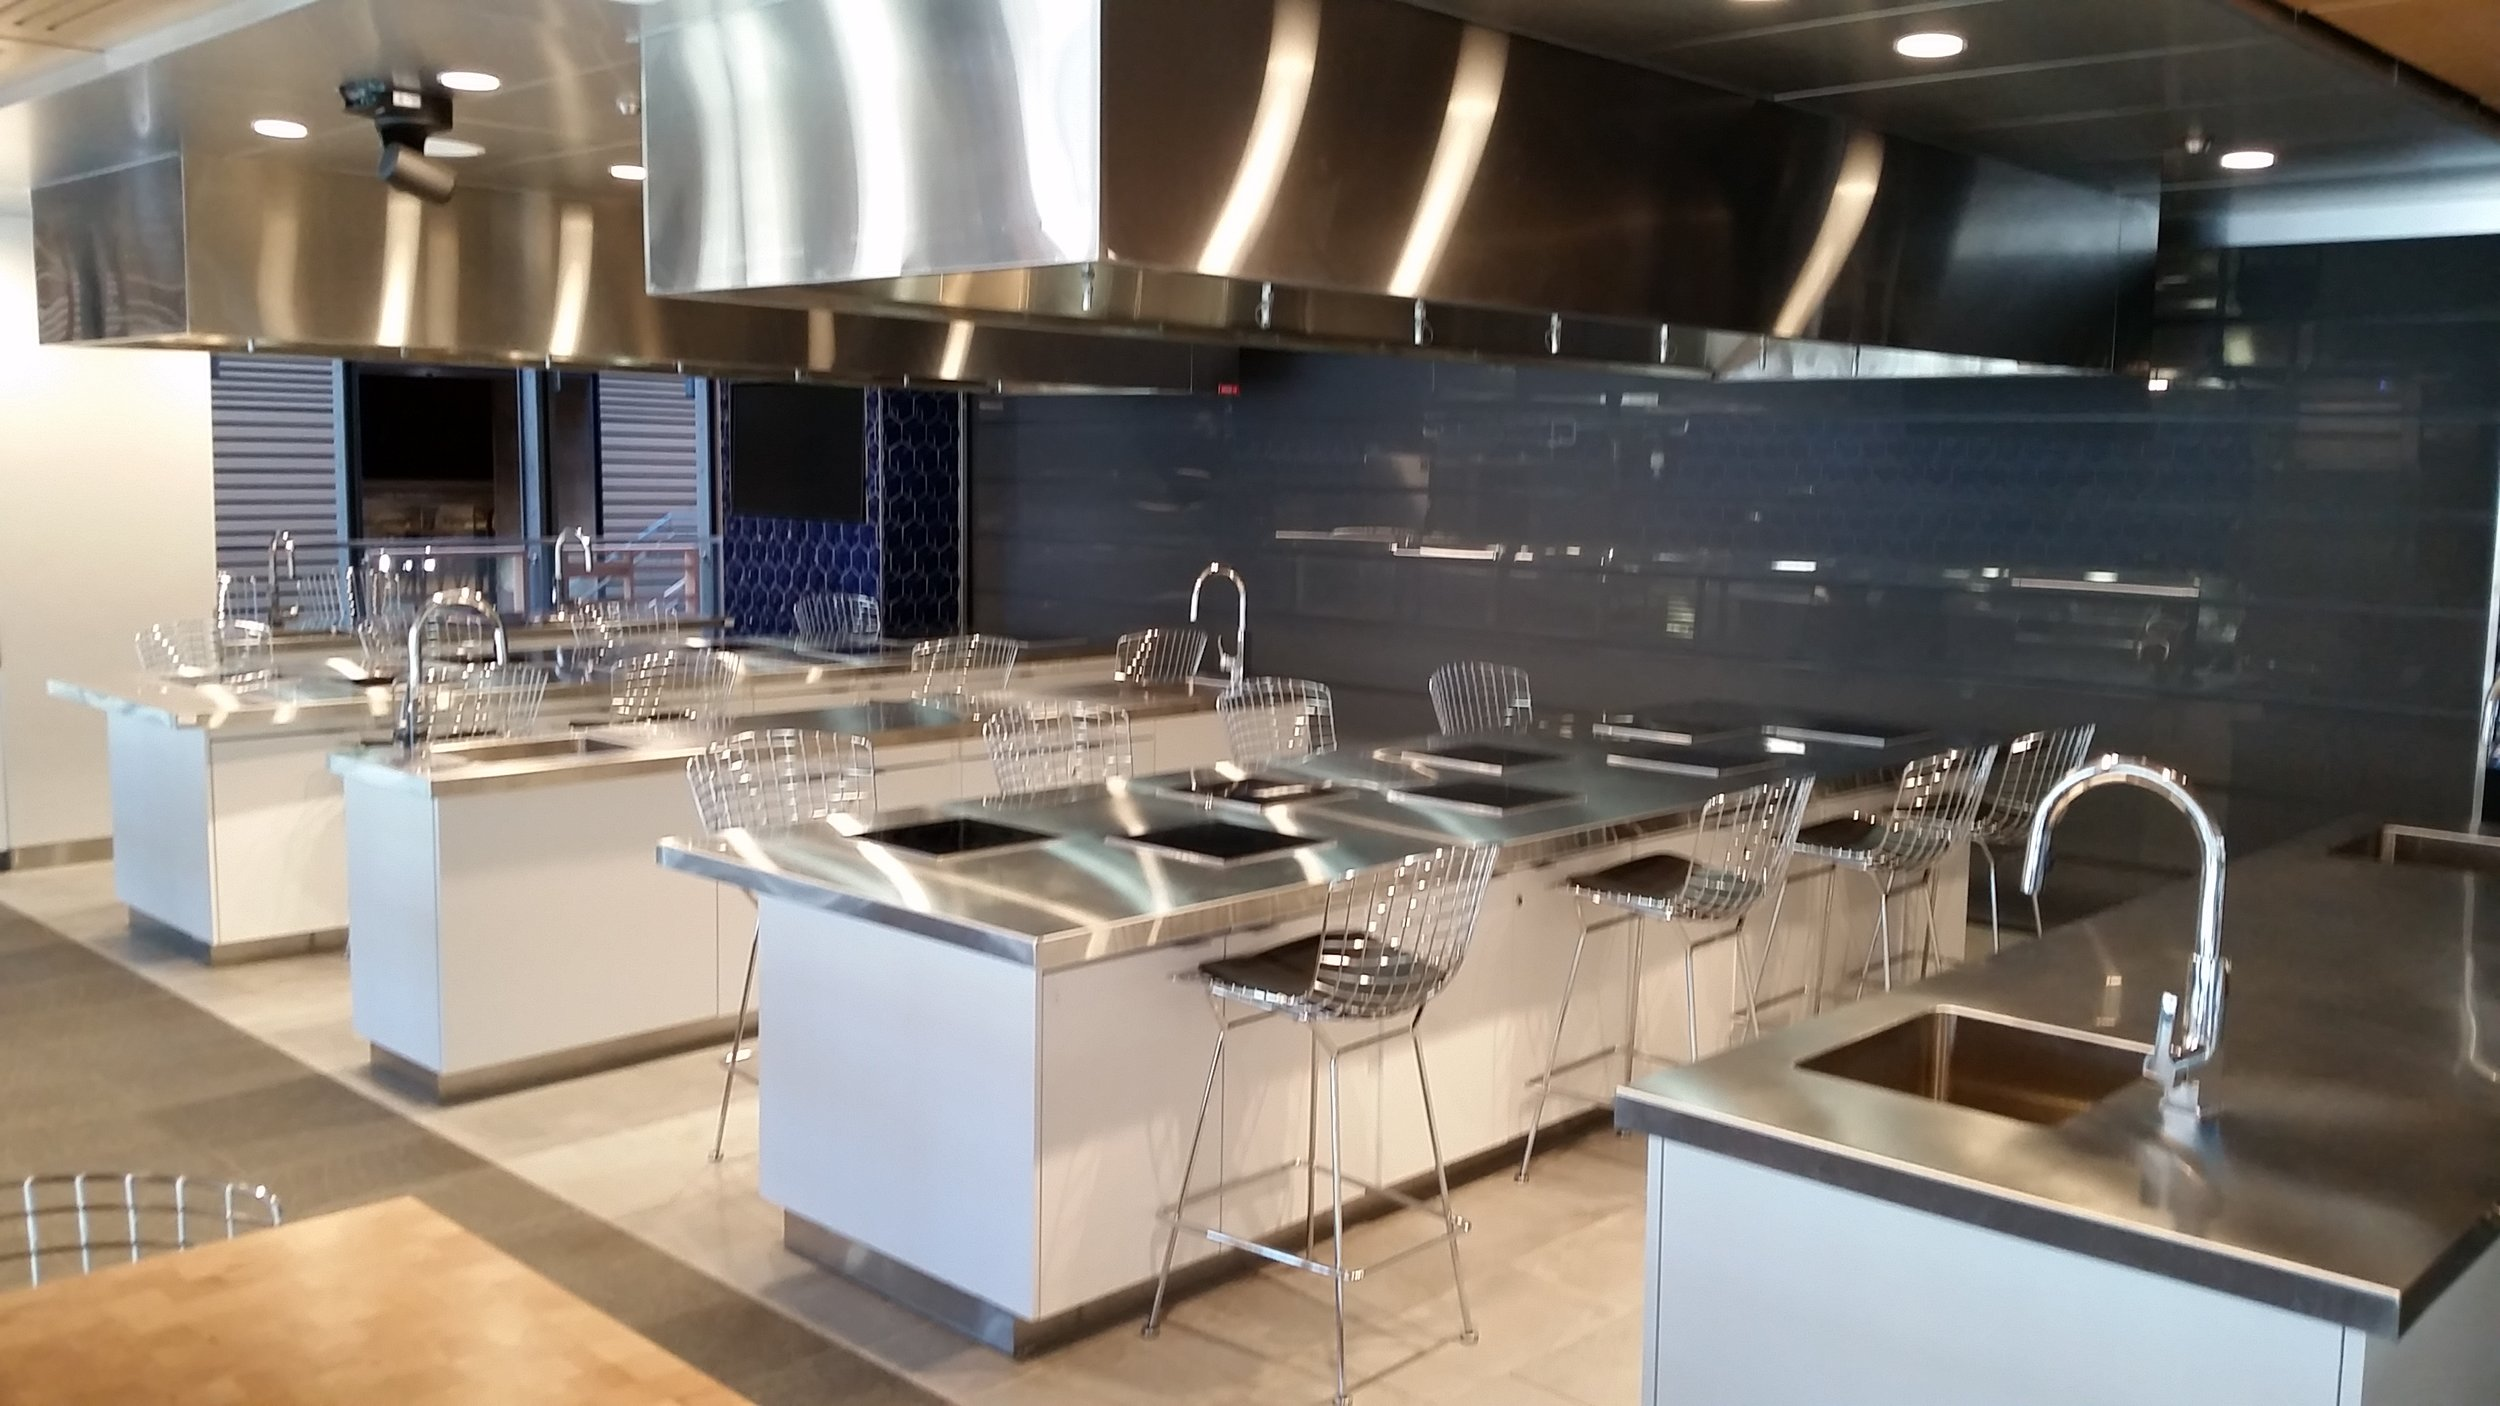 Duke University's teaching kitchen